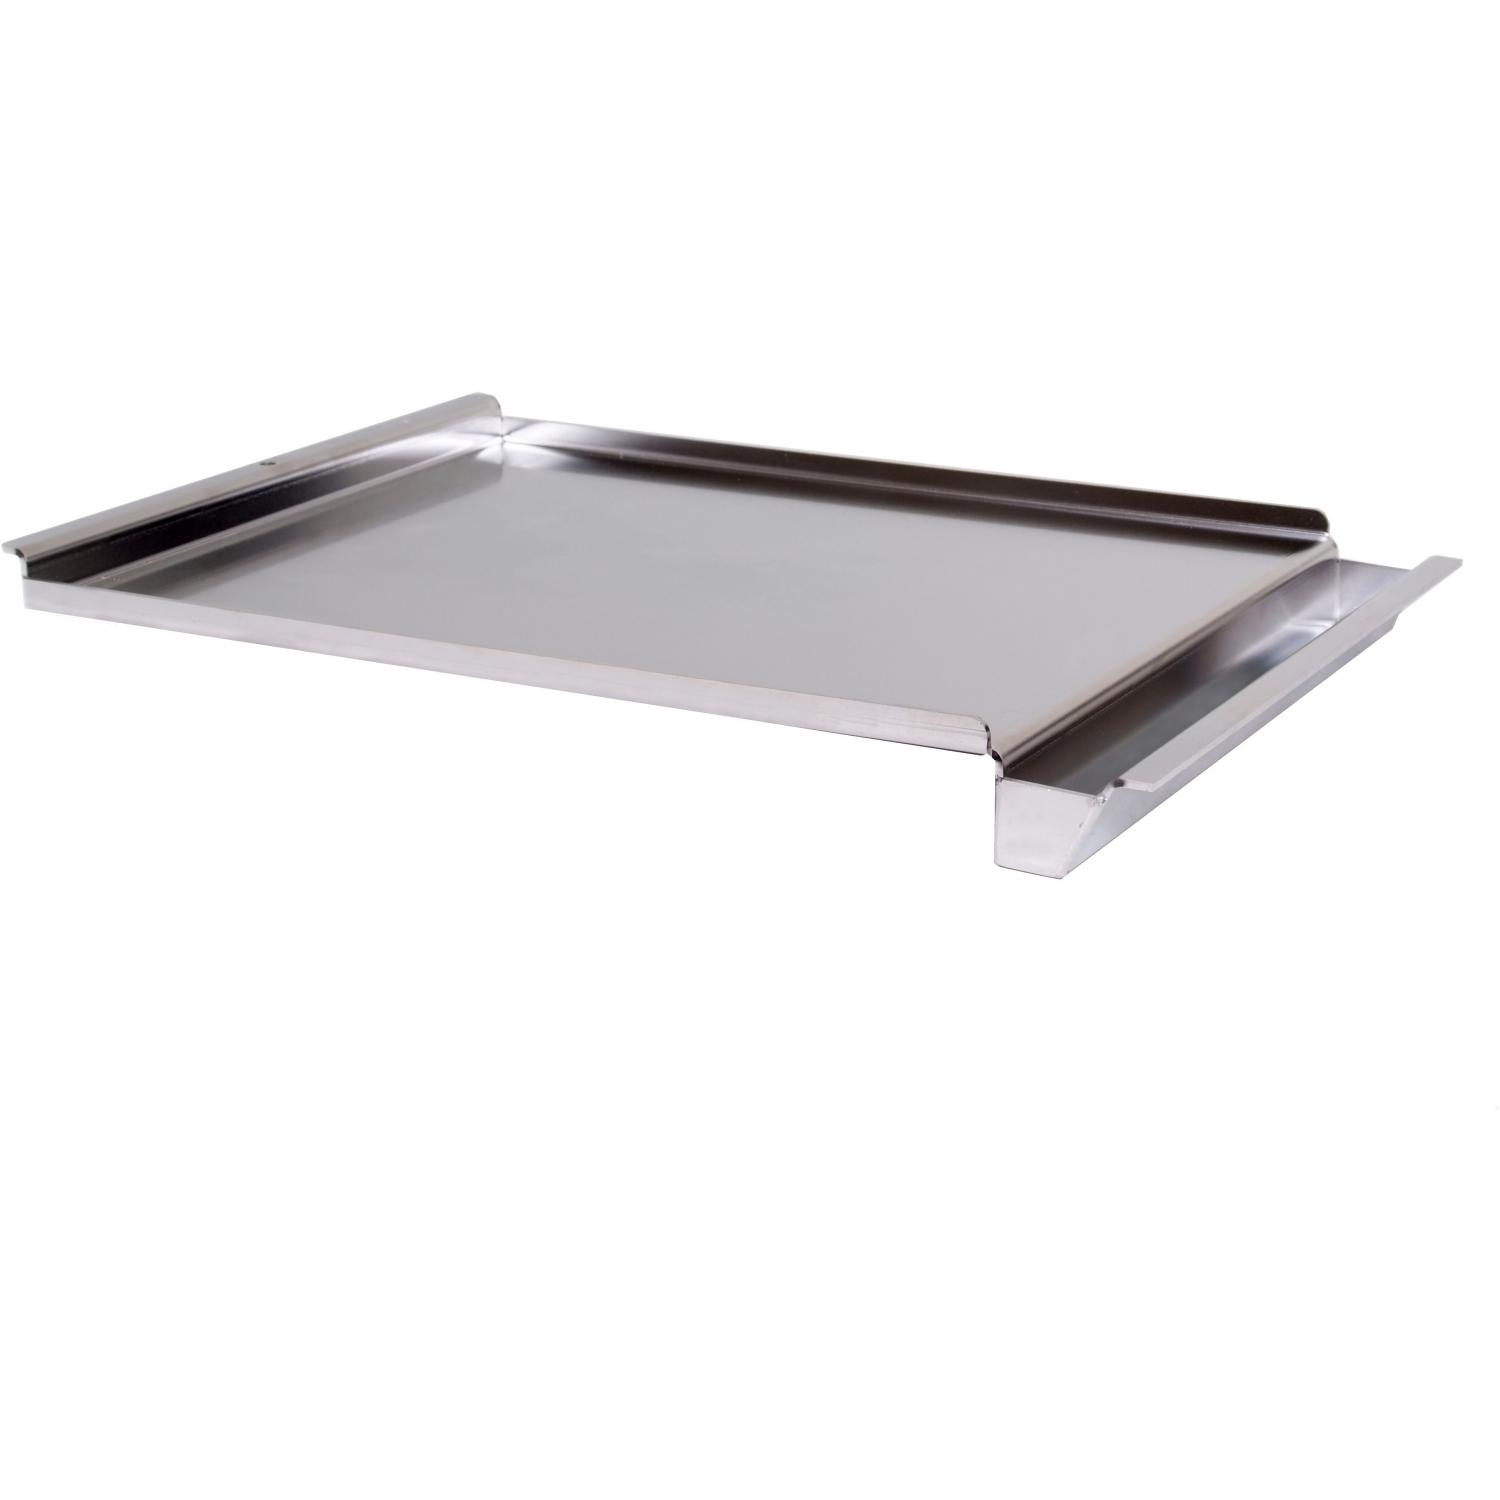 Broilmaster Stainless Steel Griddle For P3, H3 And R3B Gas Grills